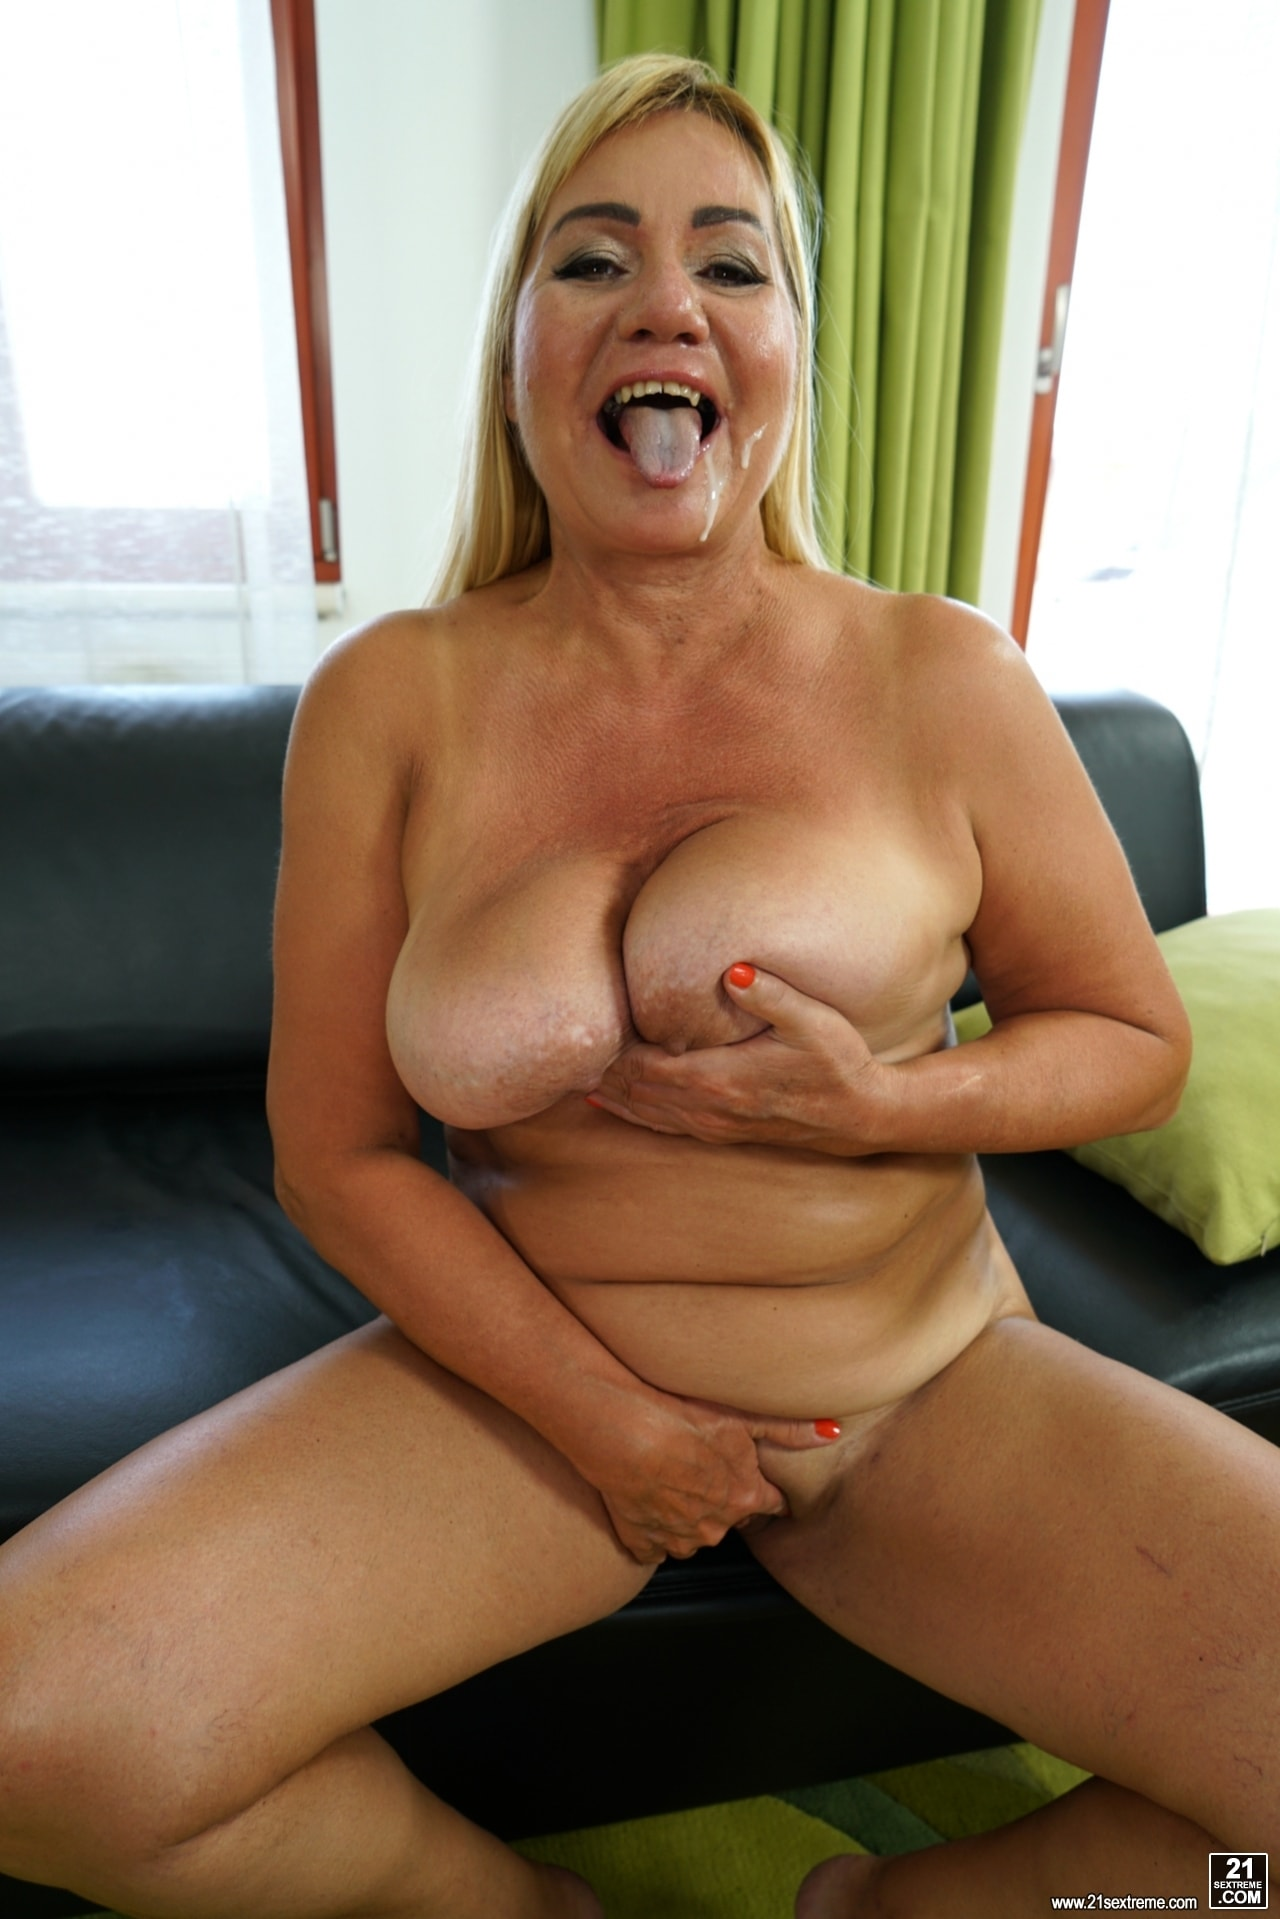 21Sextury 'Come Play With Granny' starring Pam Pink (Photo 240)